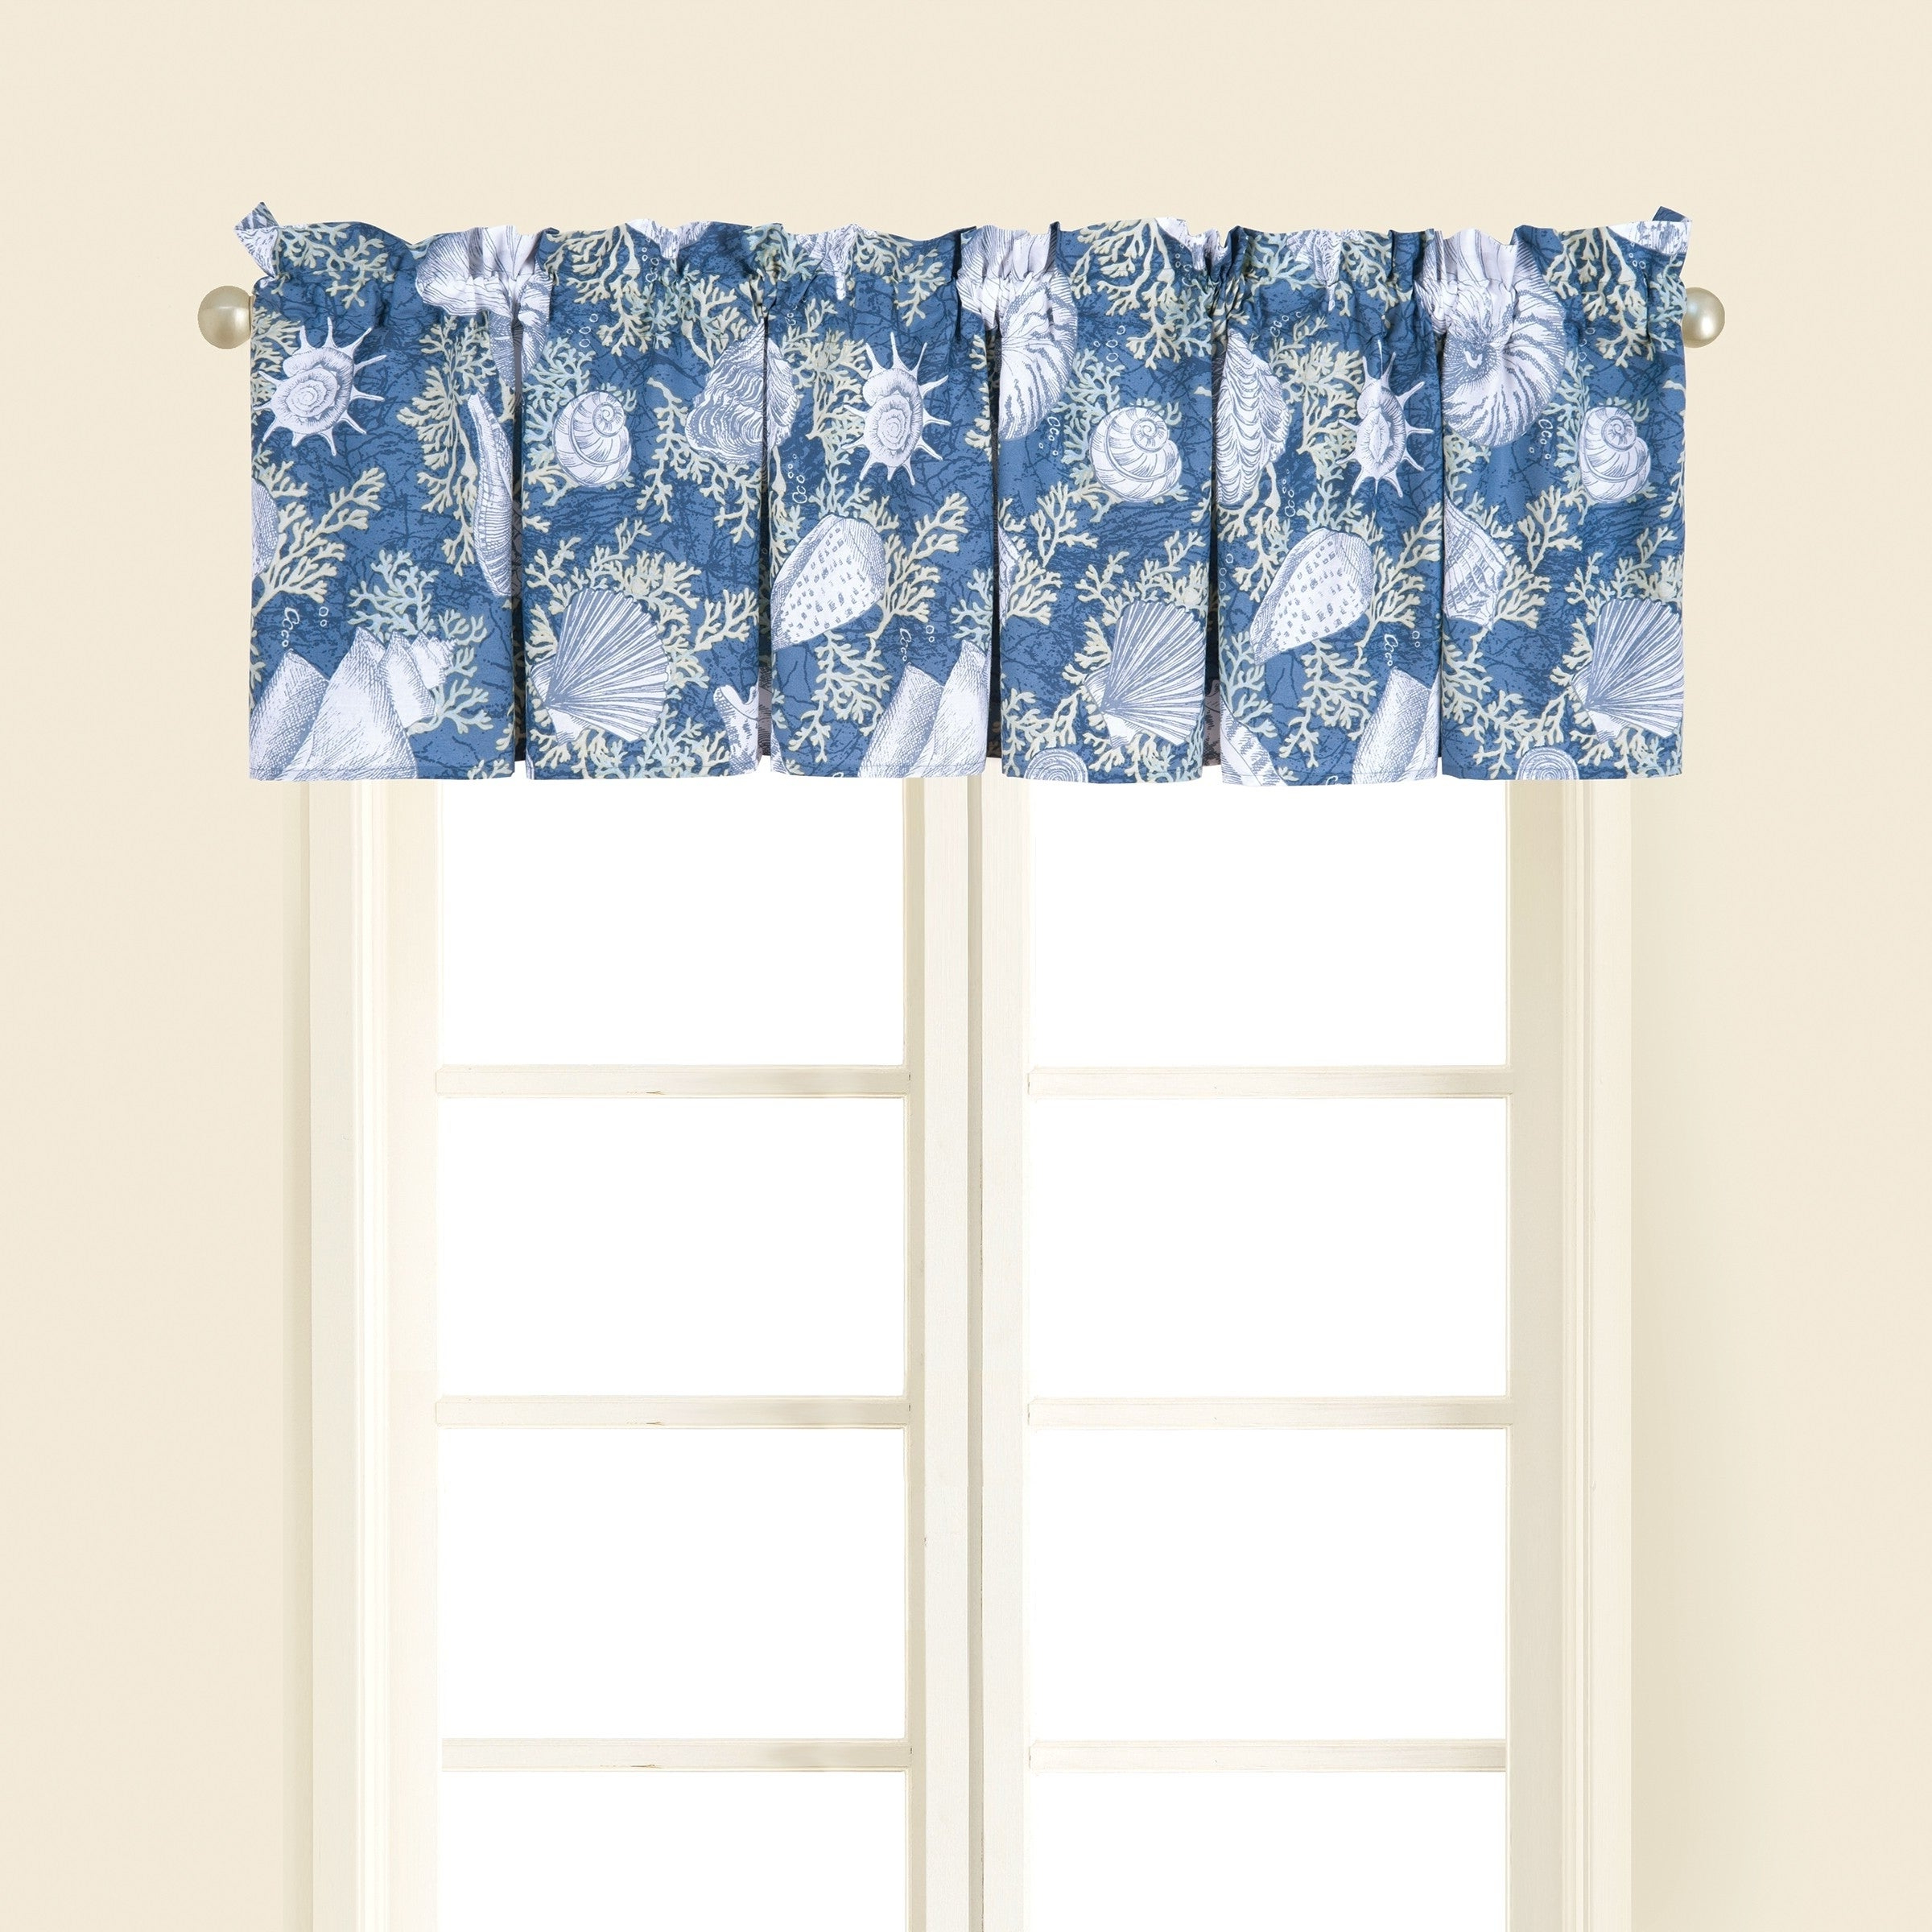 Newest Coastal Tier And Valance Window Curtain Sets In Details About Window Curtain Valance Nautical Beach Coastal Set 2 Cape Coral Decor Gift New (View 14 of 20)